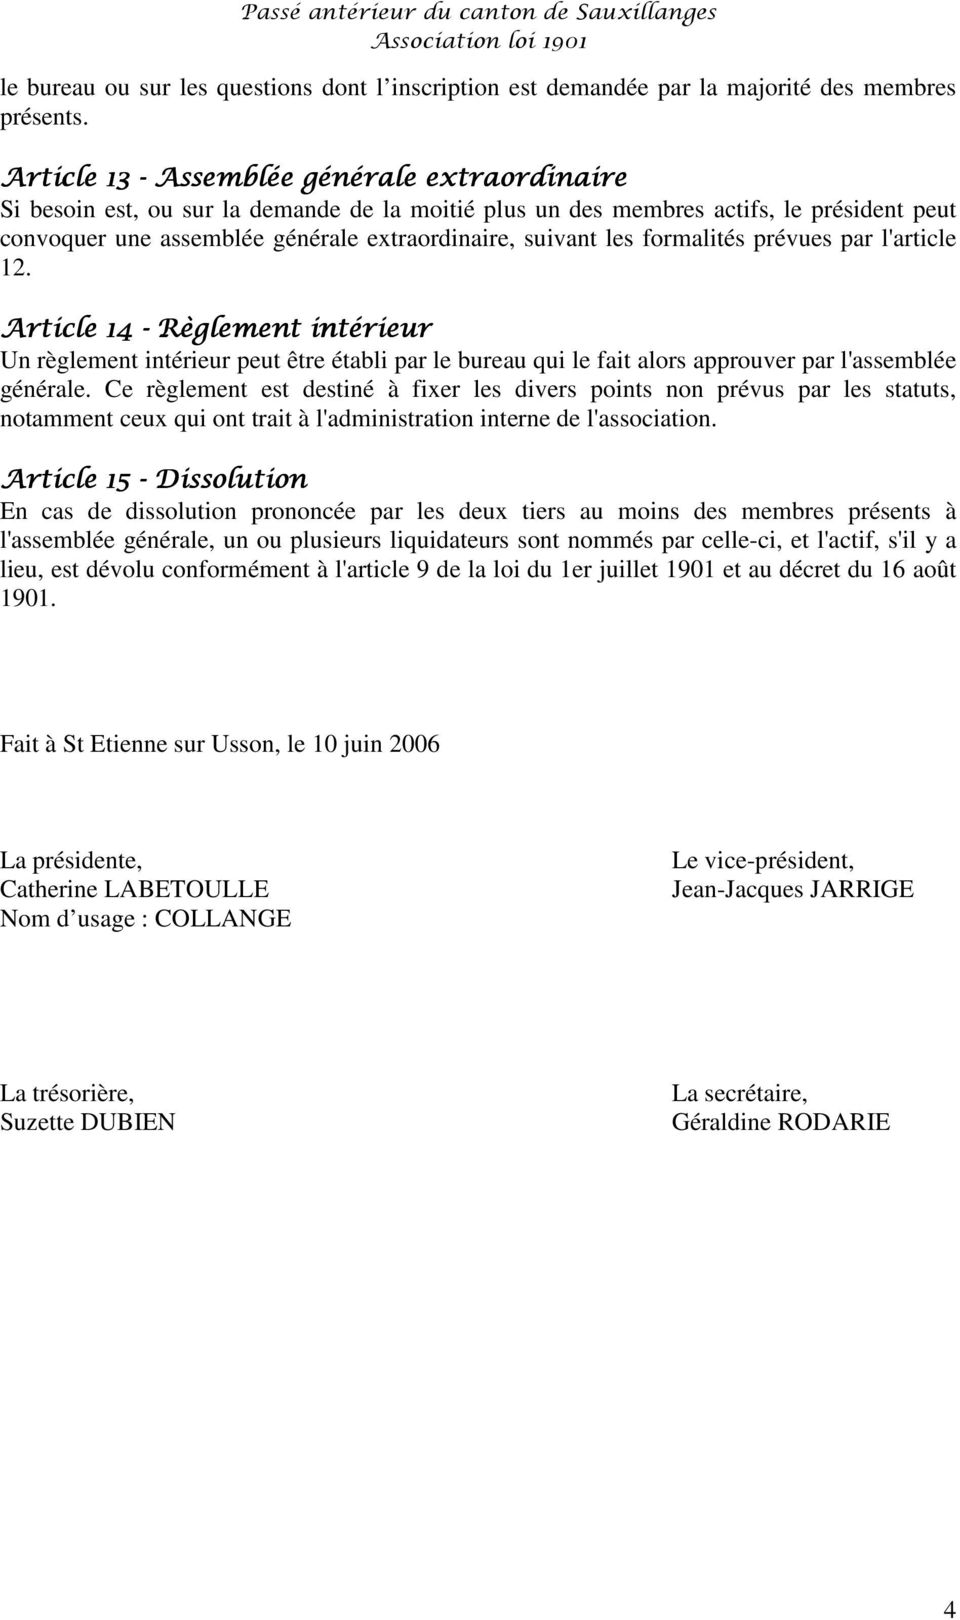 Le pass ant rieur du canton de sauxillanges pdf - Composition bureau association loi 1901 ...